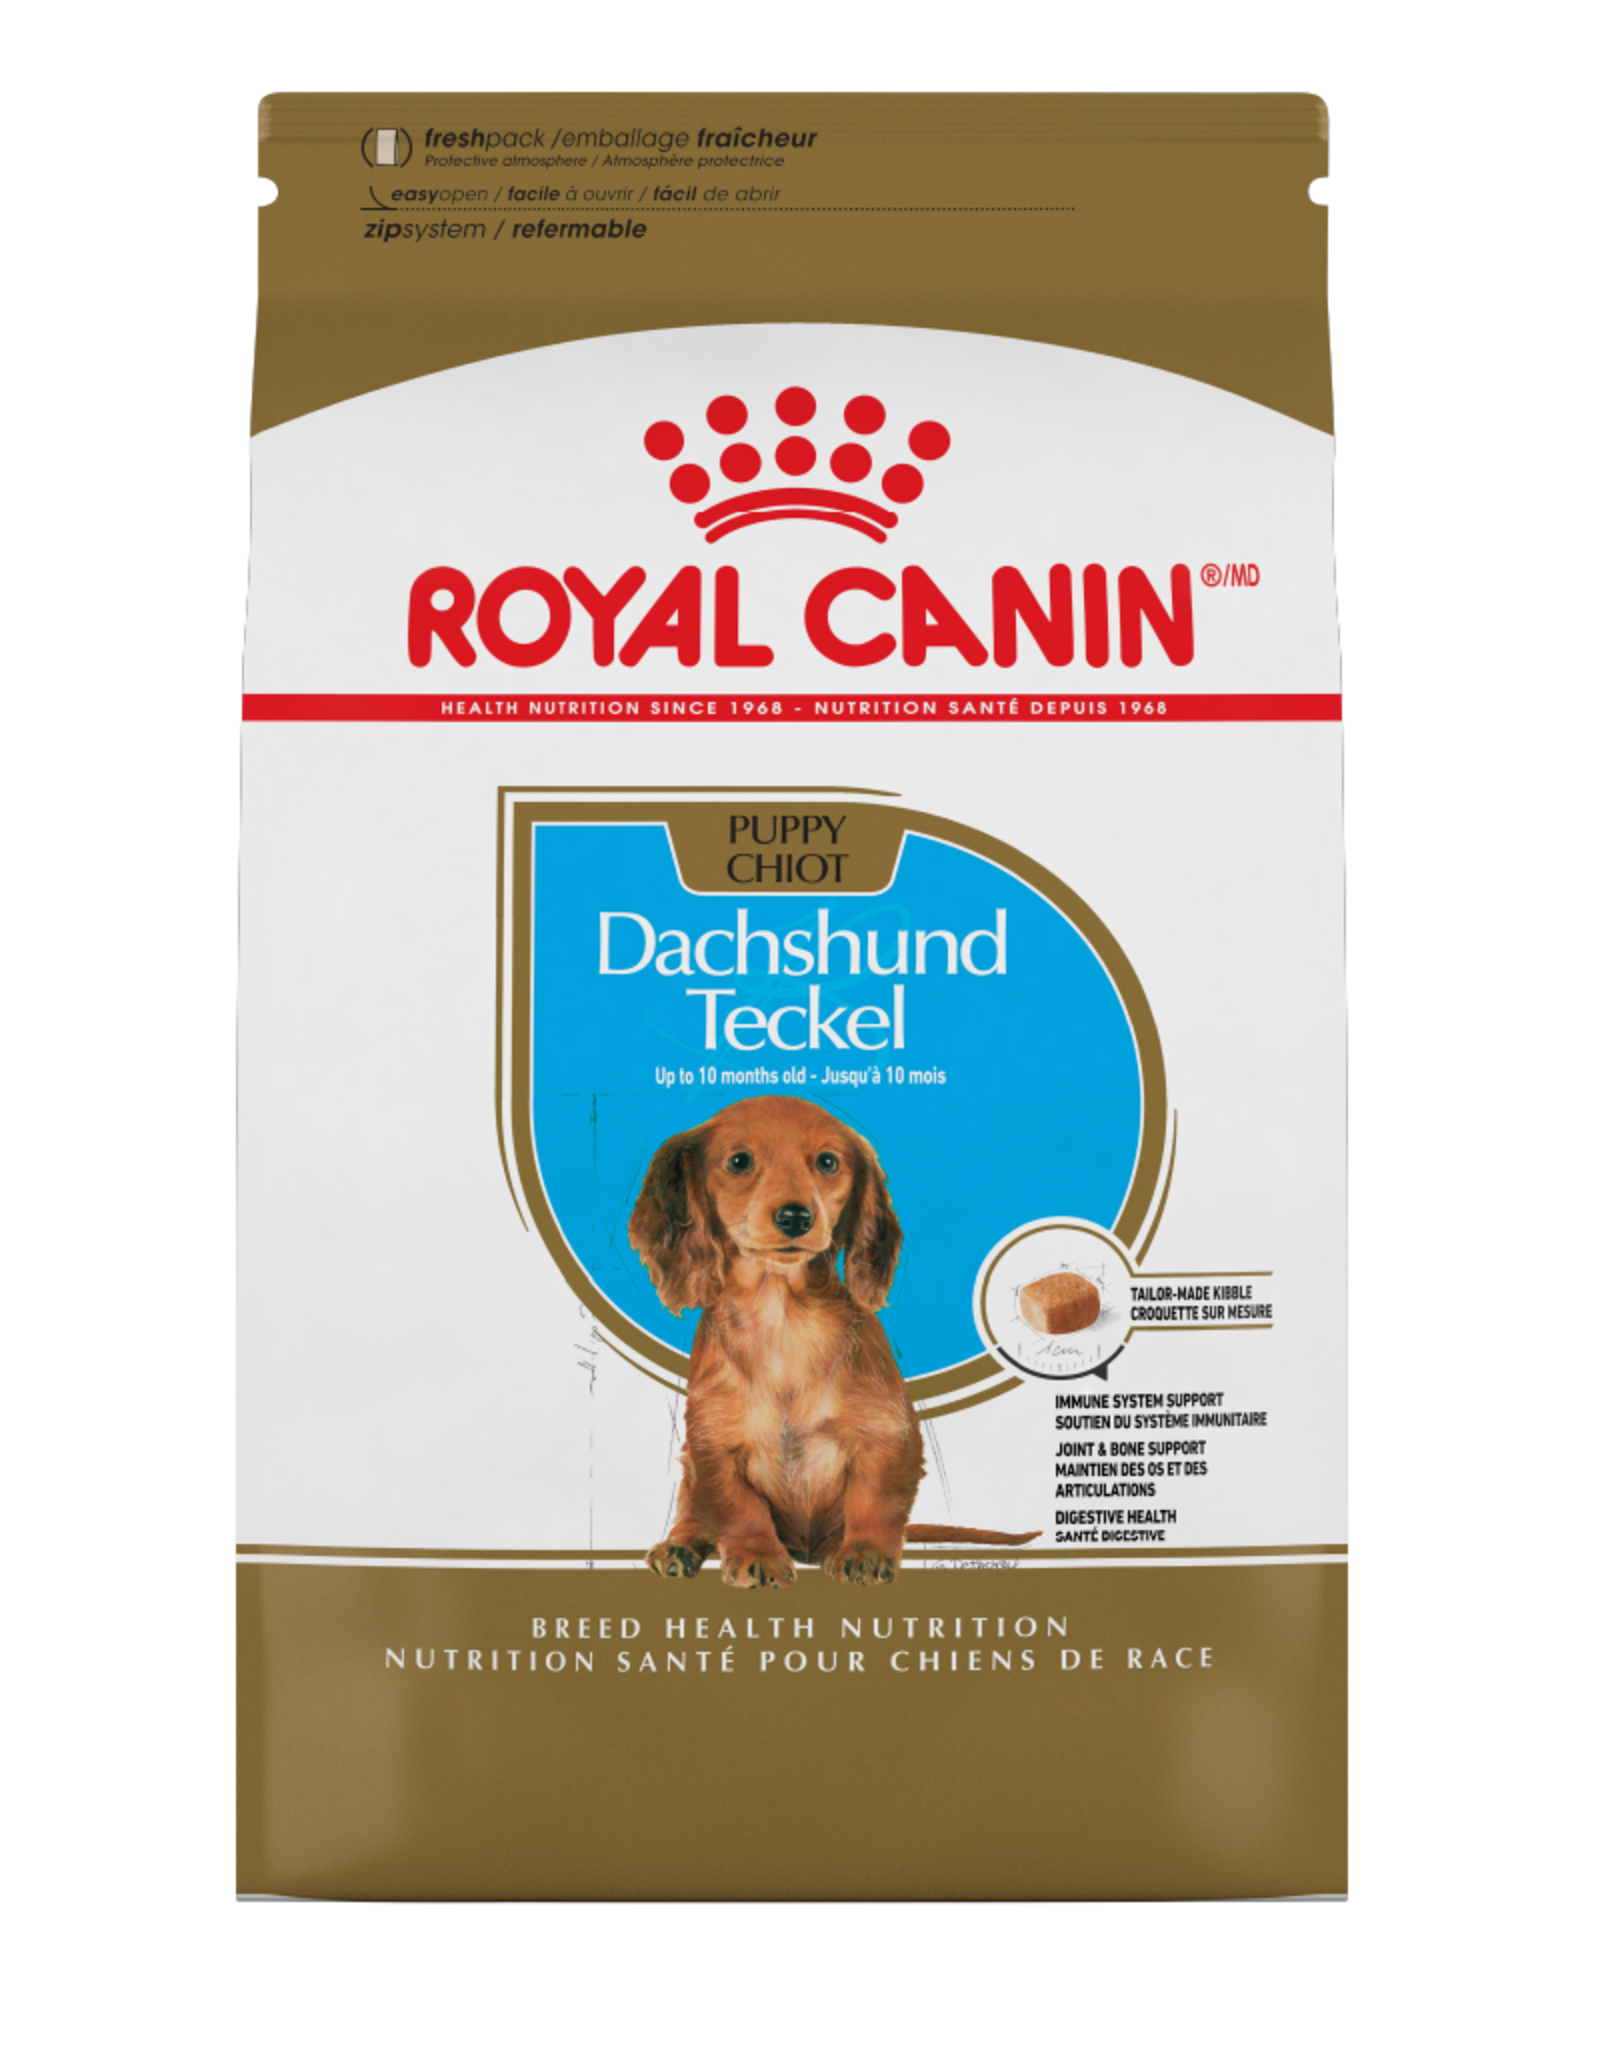 ROYAL CANIN Royal Canin | Dachshund Puppy 2.5 lb